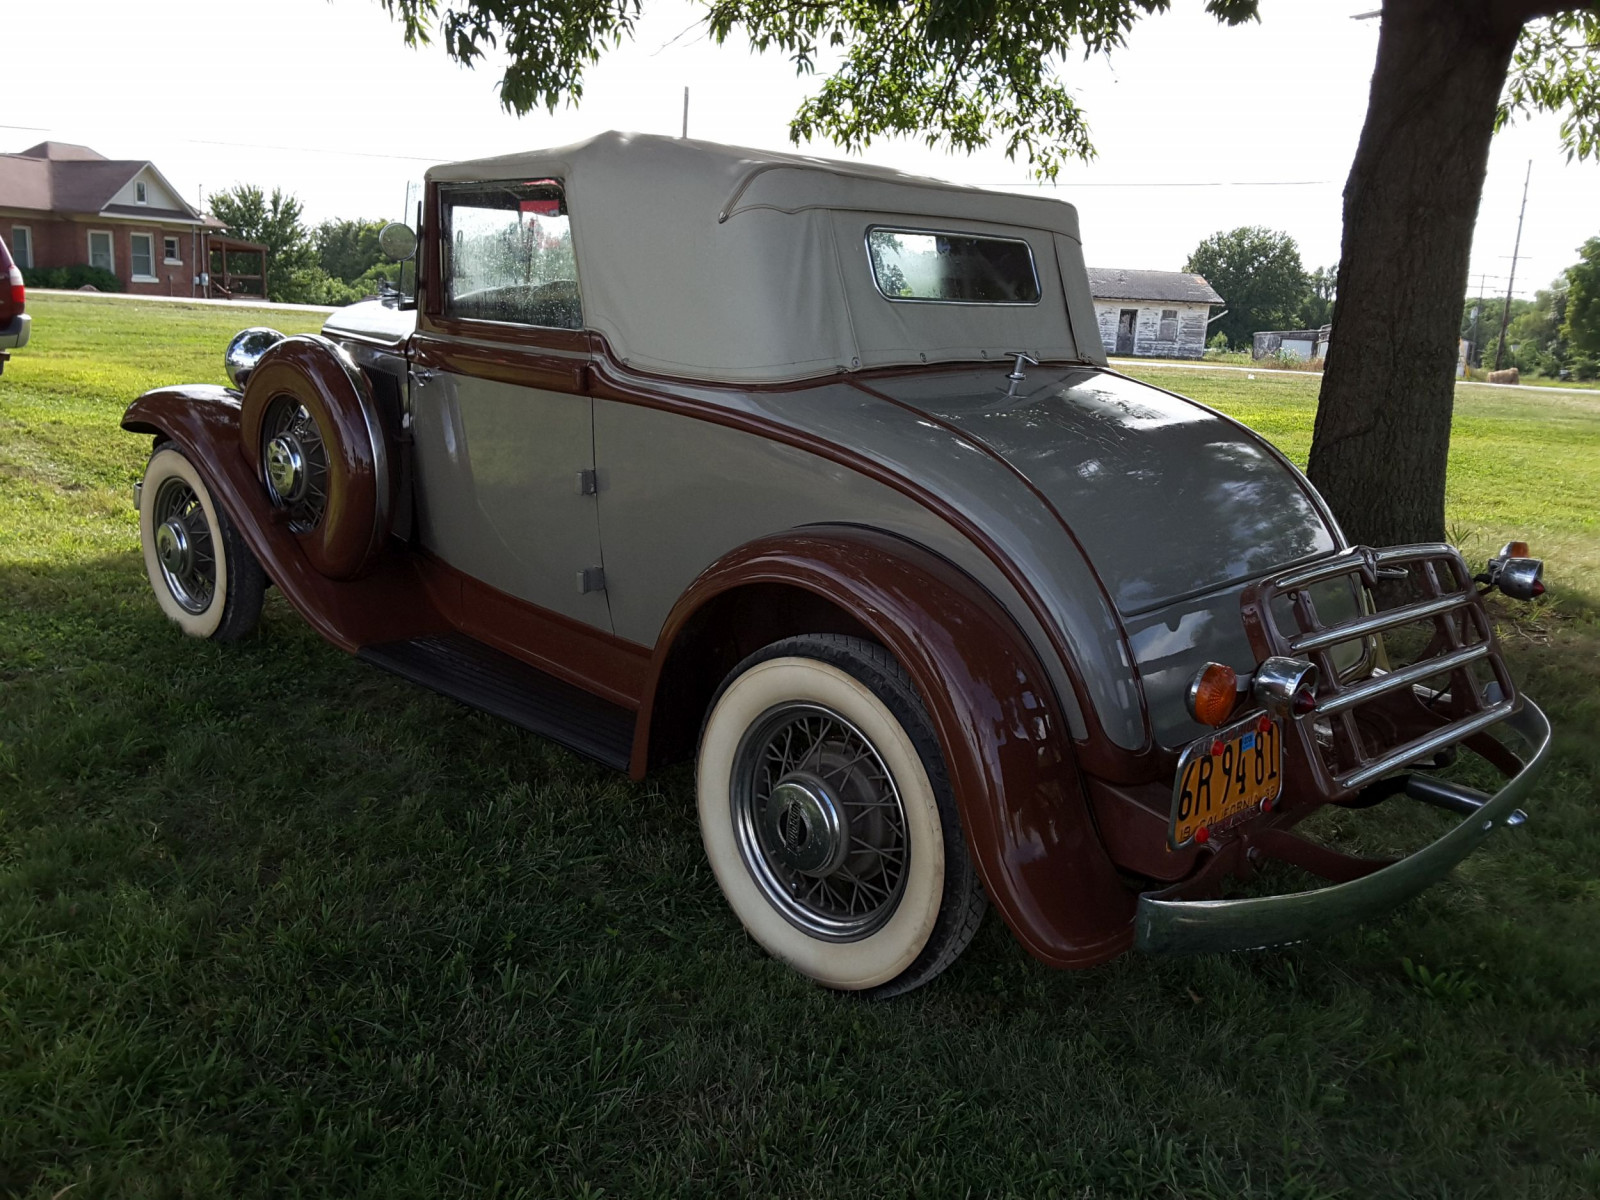 1932 Plymouth Convertible Coupe - Image 4